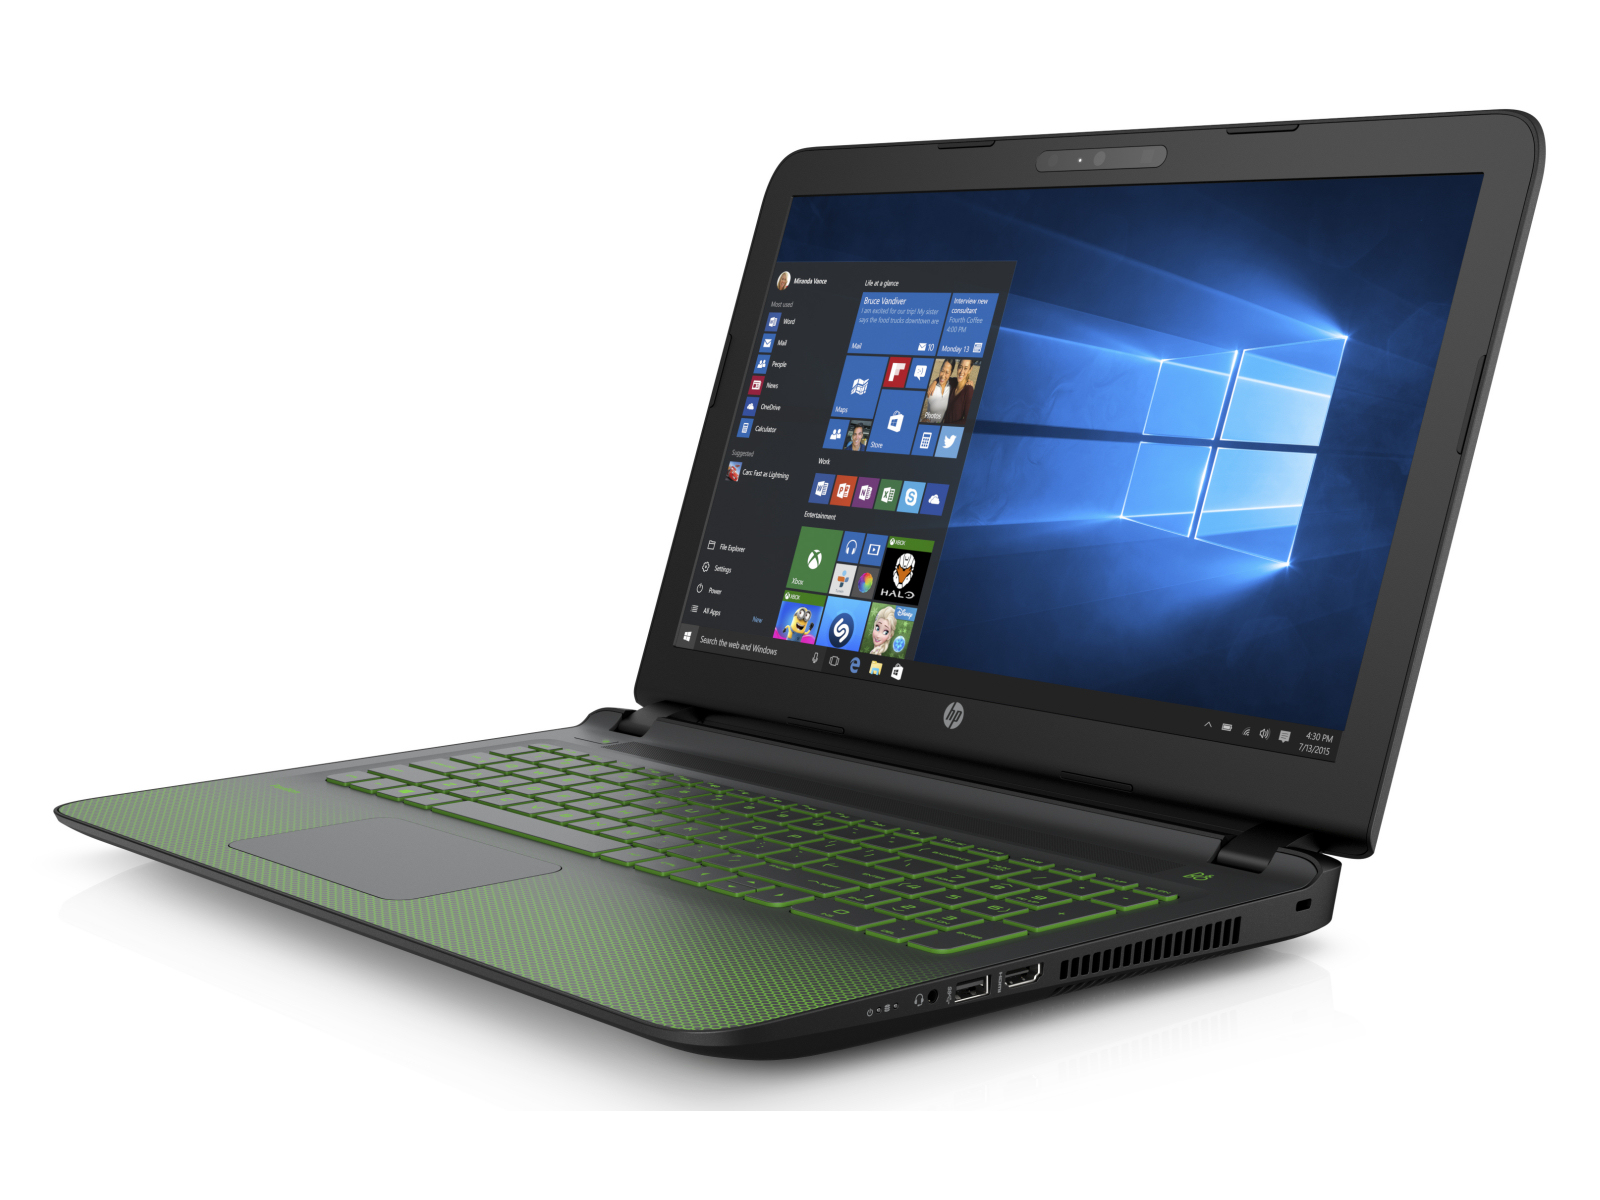 Hp Pavilion 15 I7 6700hq Gtx 950m Notebook Review